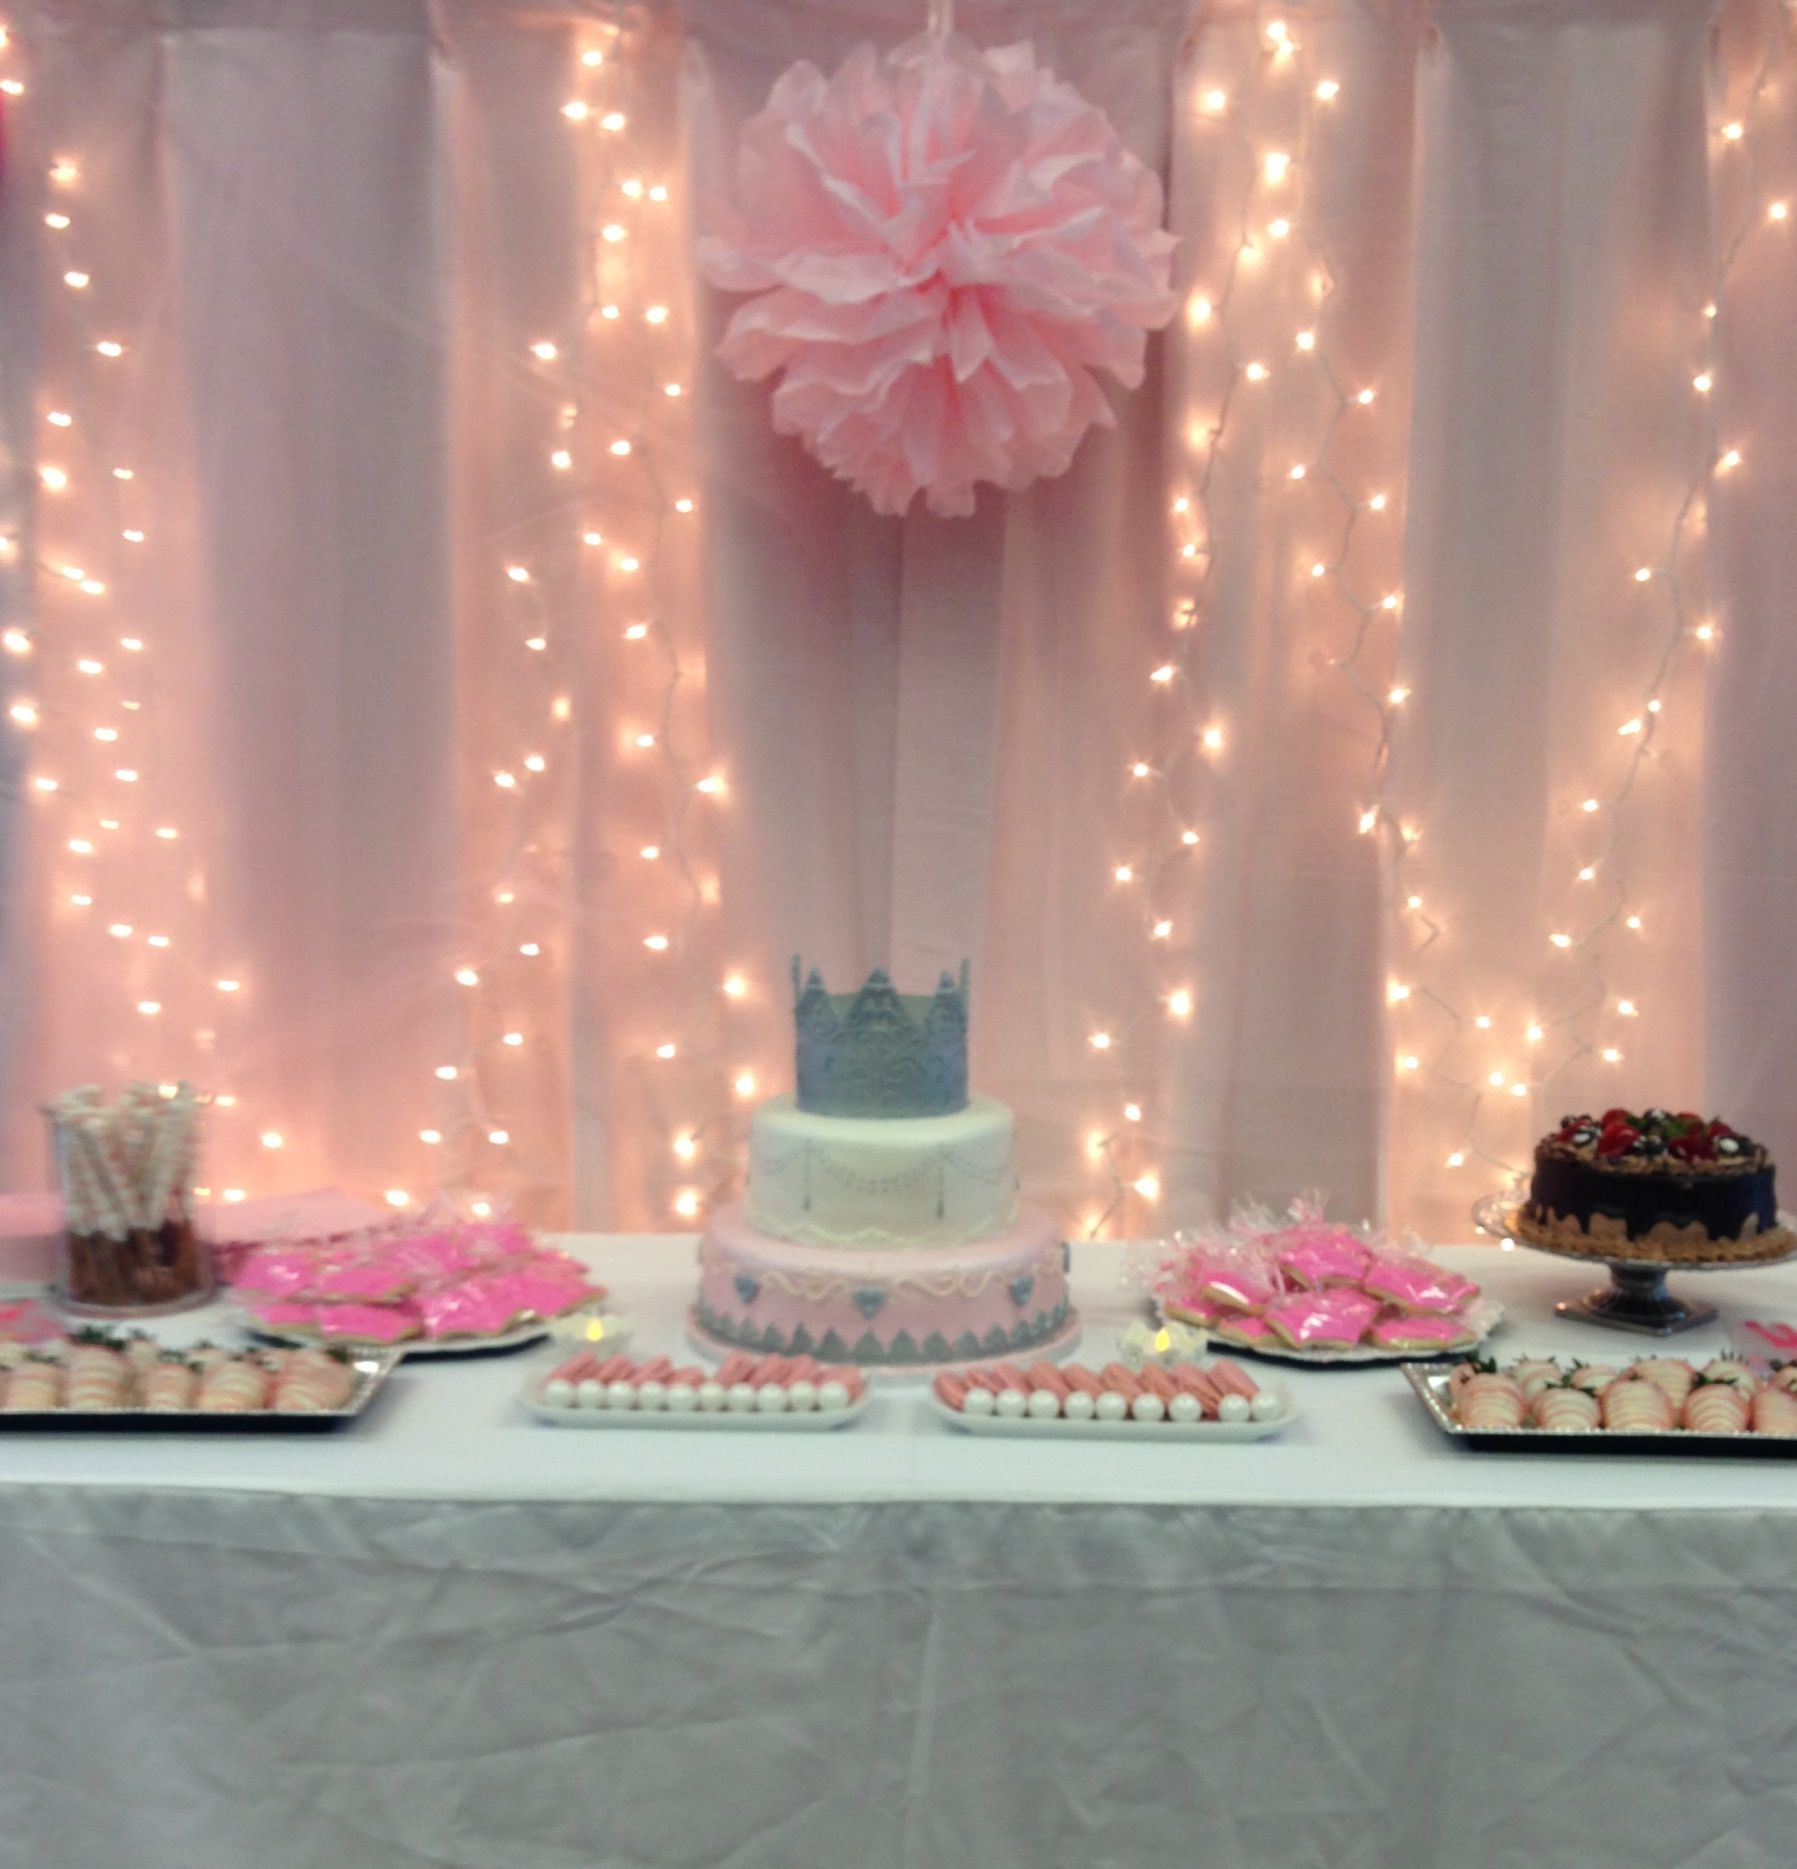 Princess Baby Shower Theme To Get The Soft Glow Look